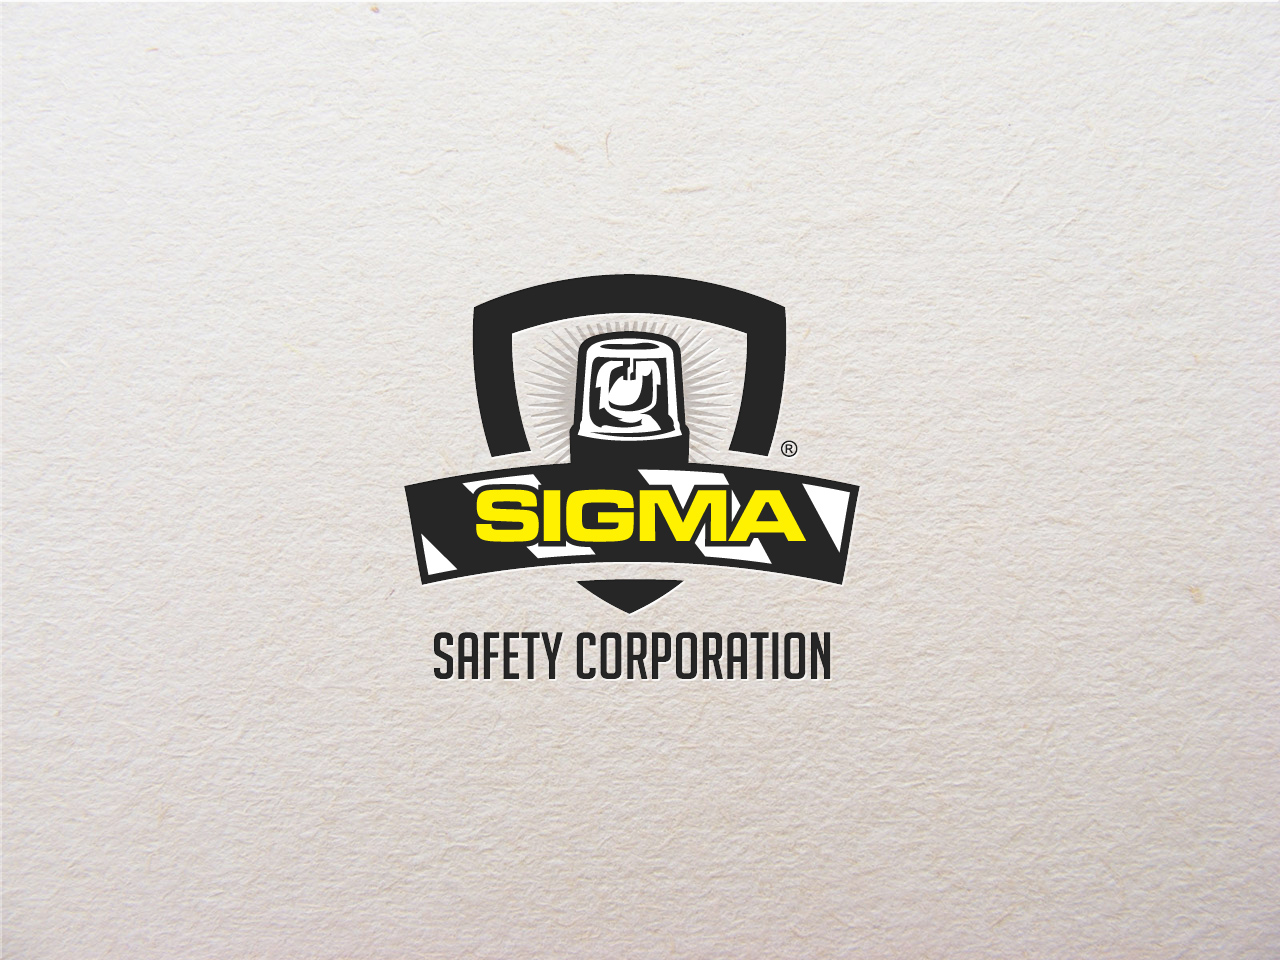 Logo Design by jpbituin - Entry No. 24 in the Logo Design Contest Creative Logo Design for Sigma Safety Corporation.